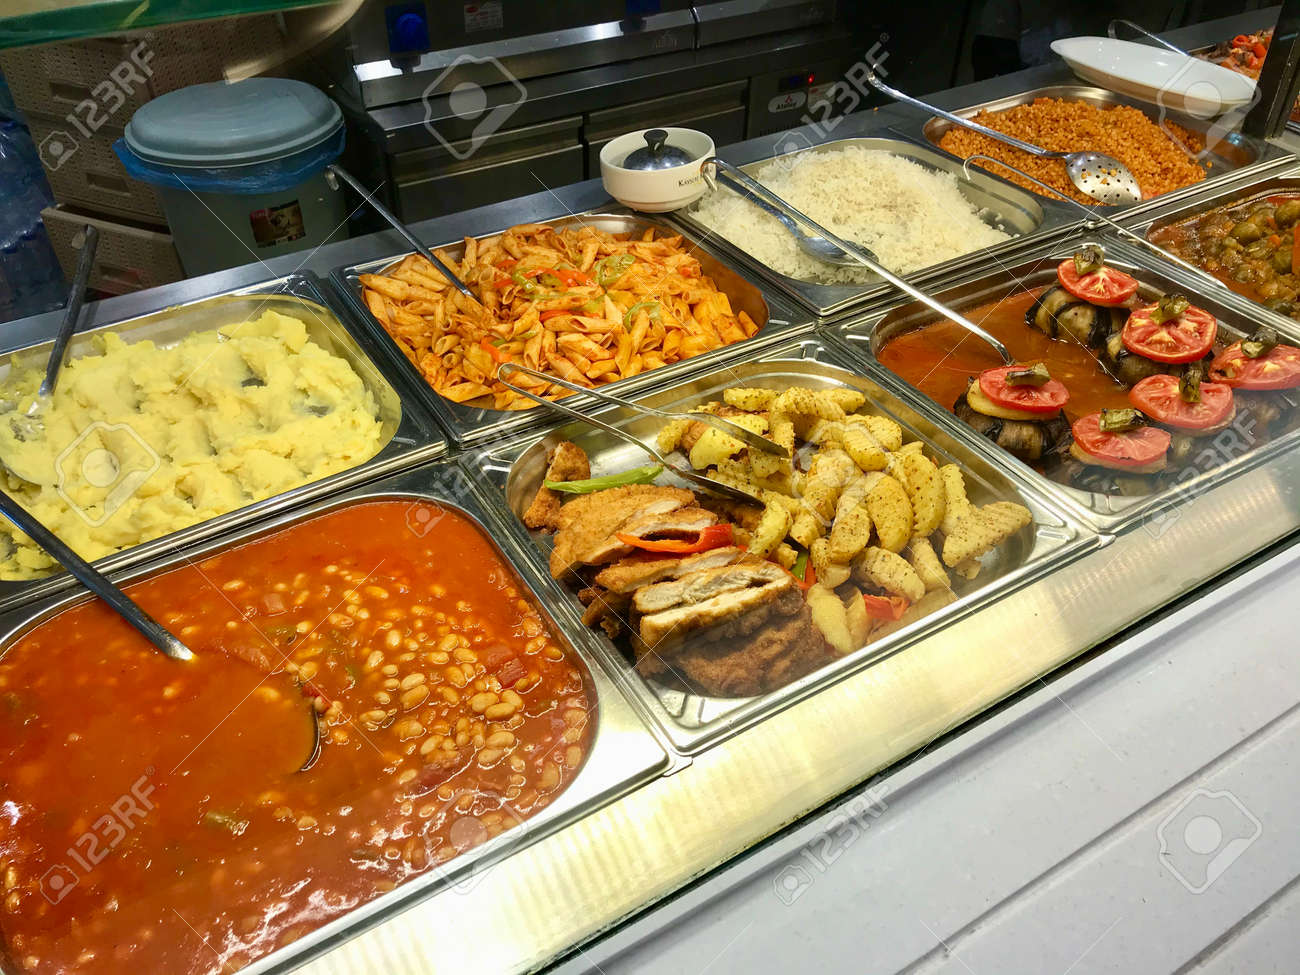 Traditional Local Turkish Restaurant Food in Showcase. Ready to Eat Traditional Food. - 151251418